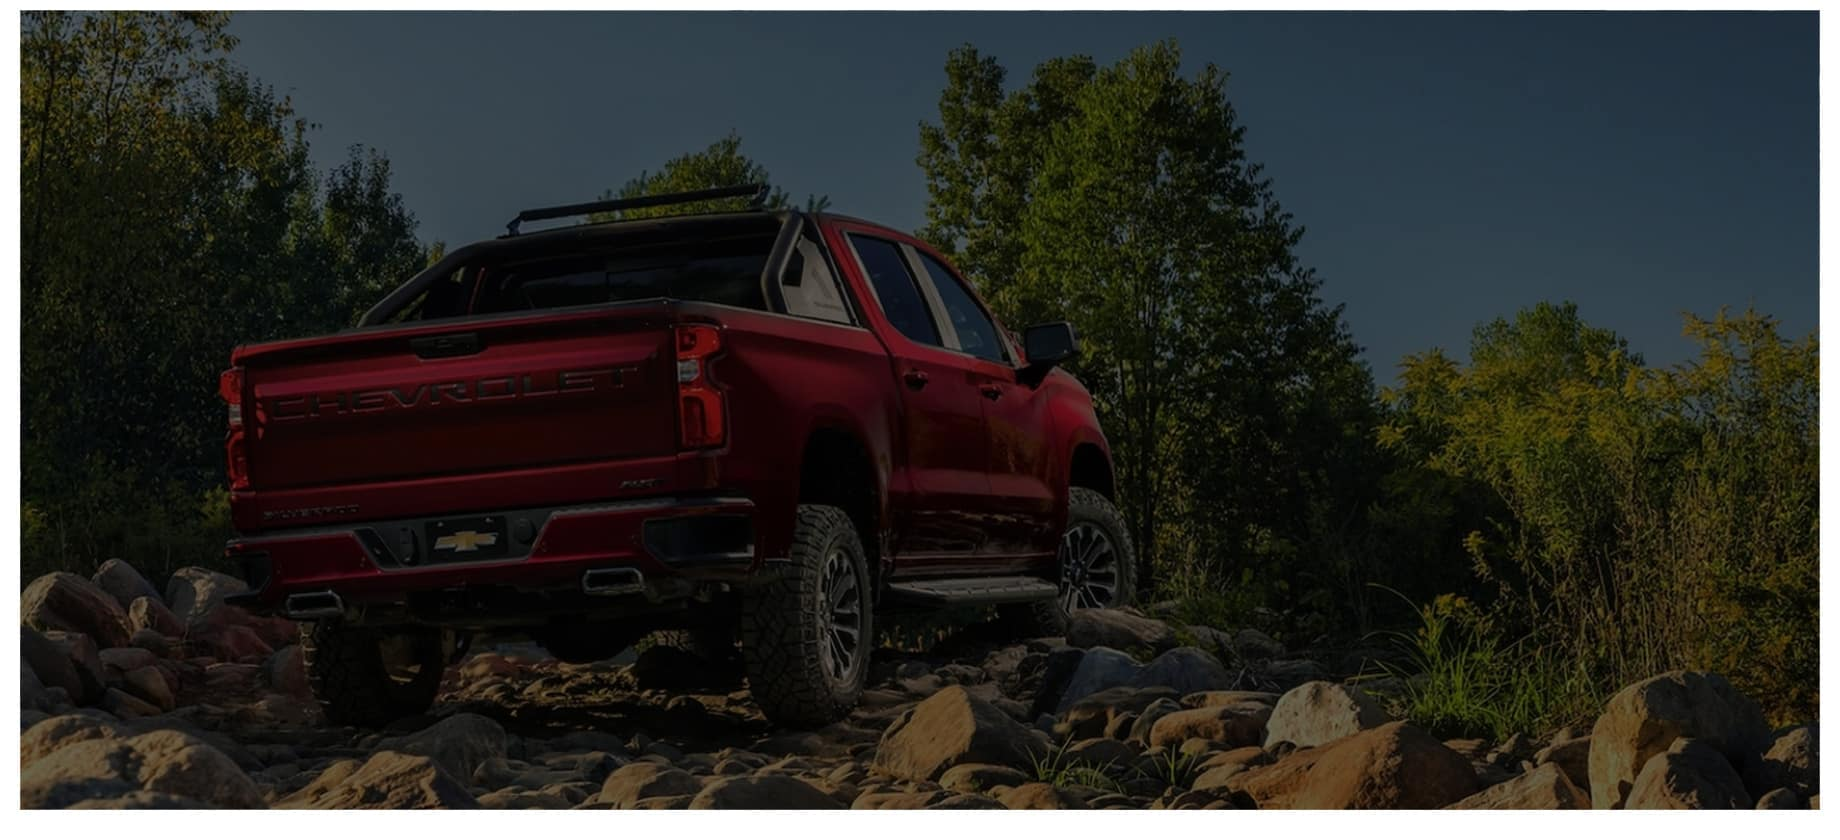 a chevy truck parked on rocks